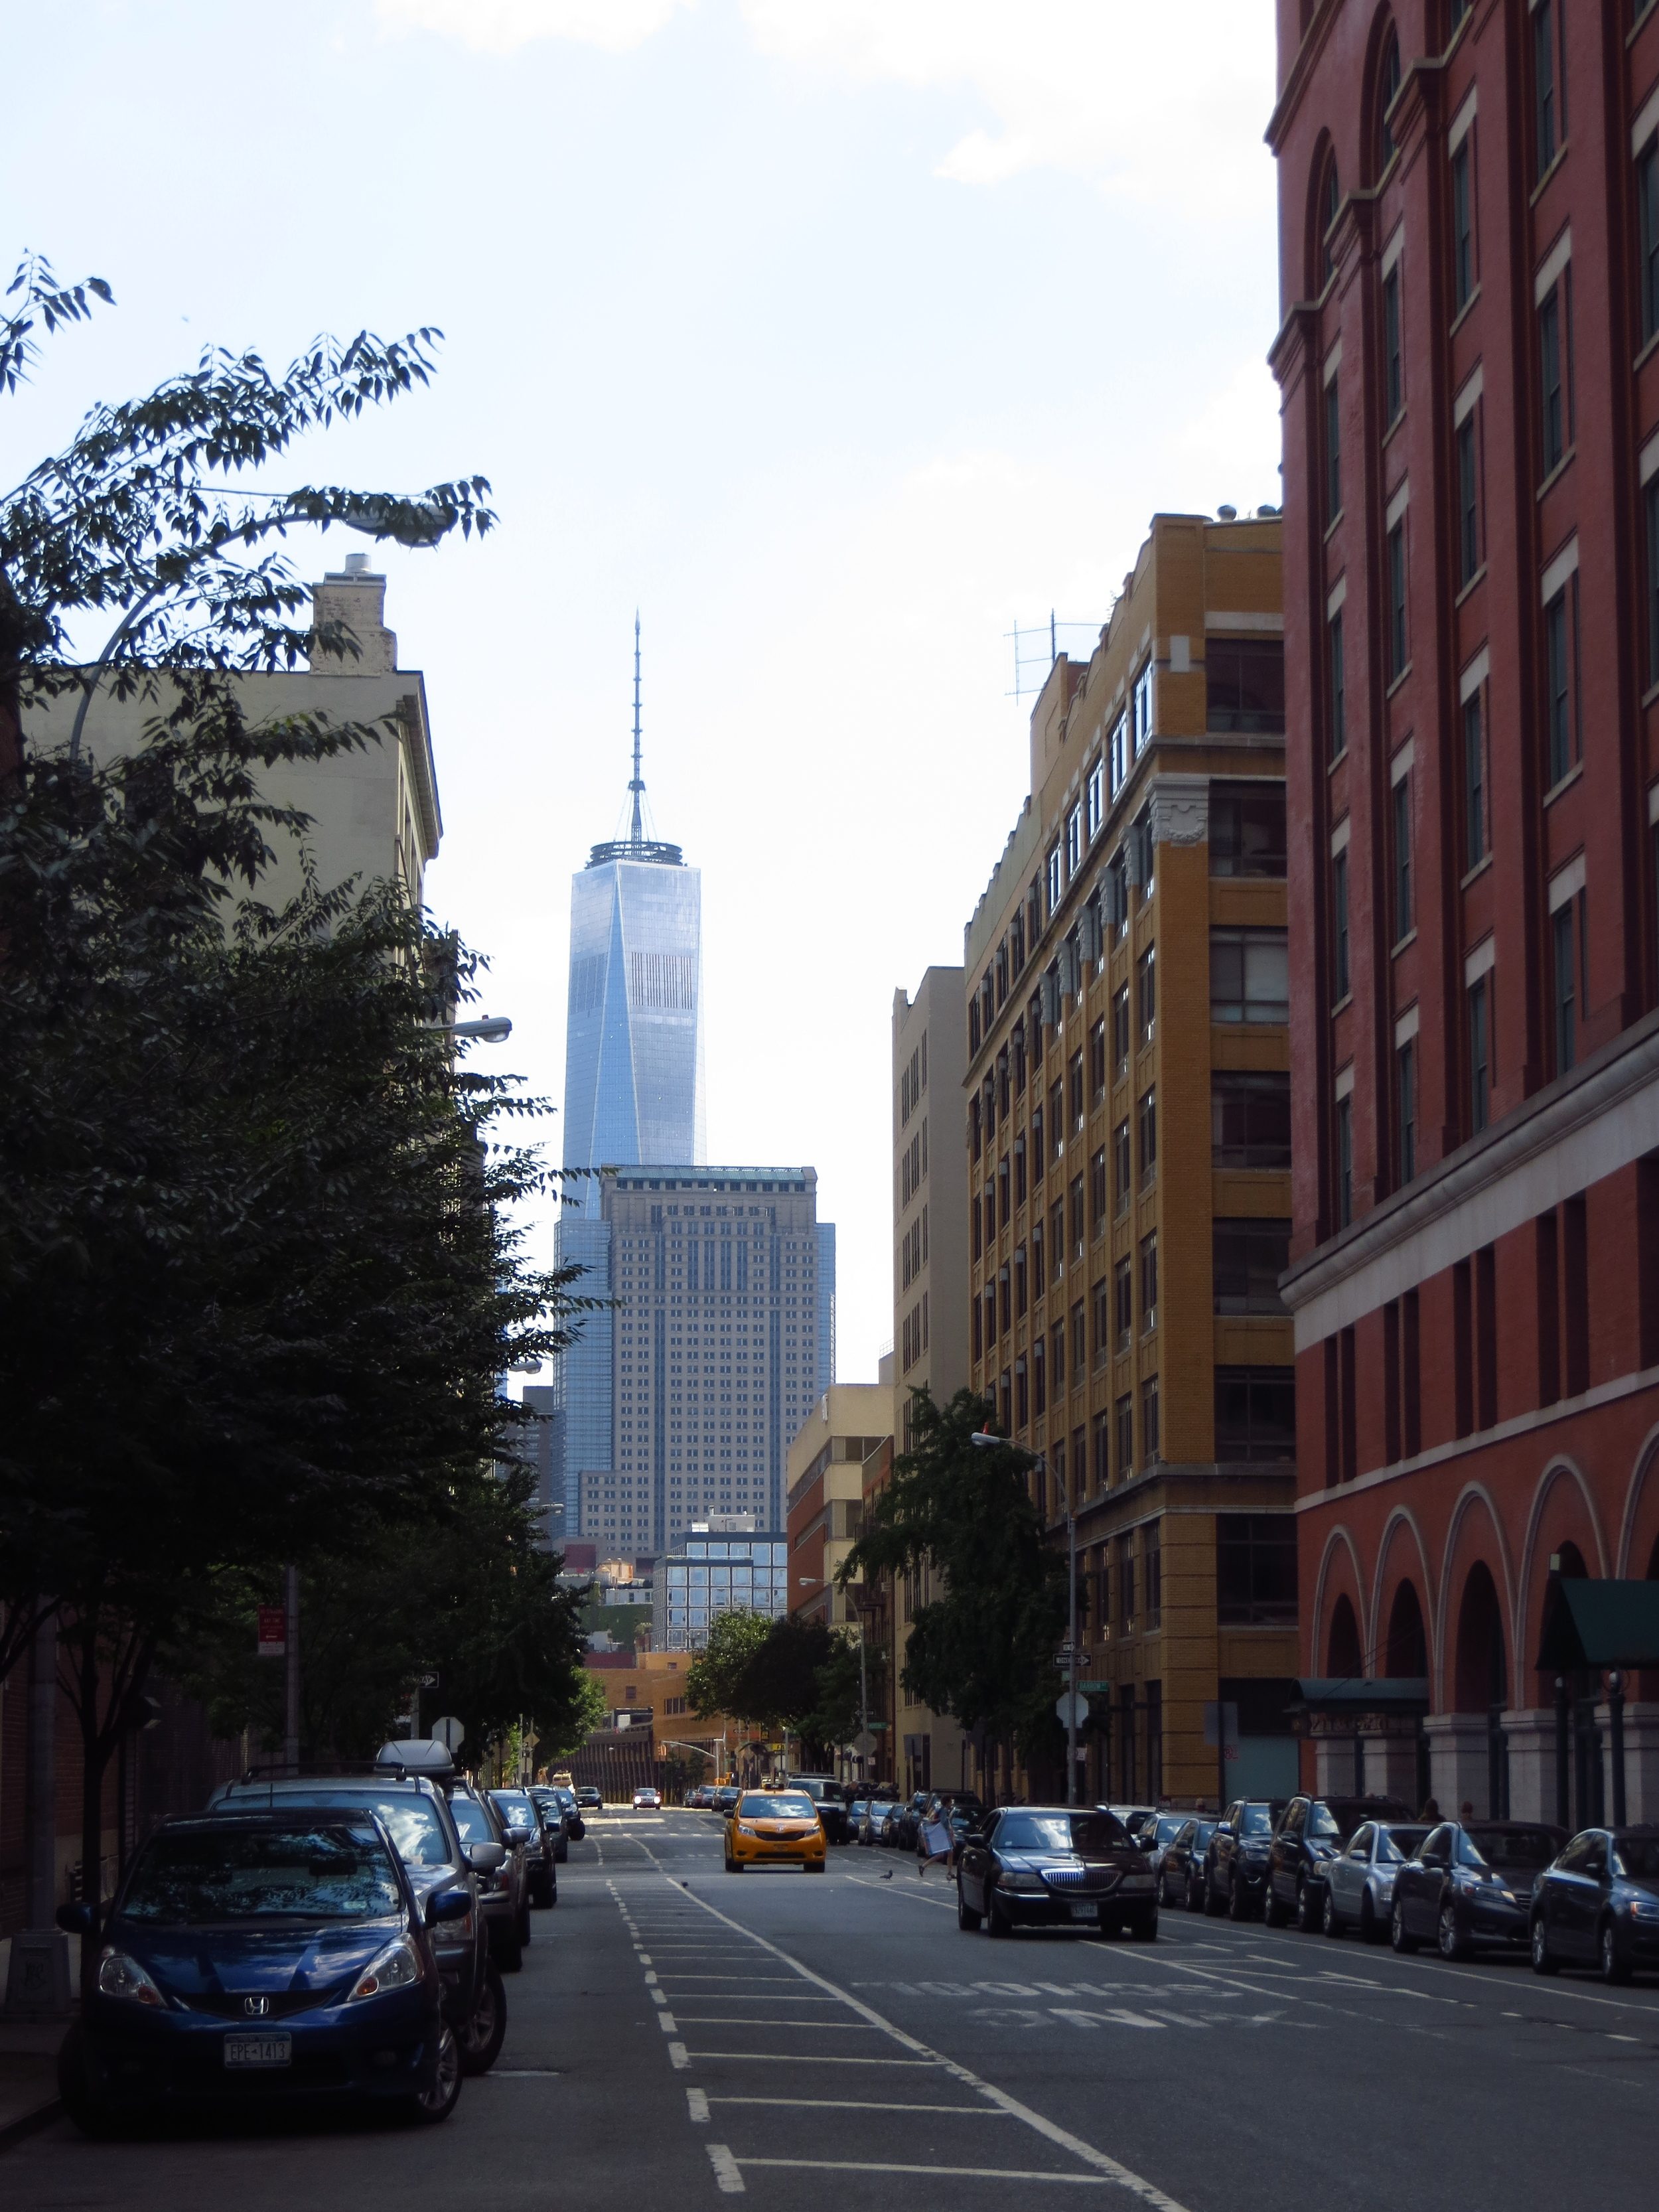 The first of what will likely be many Freedom Tower pictures